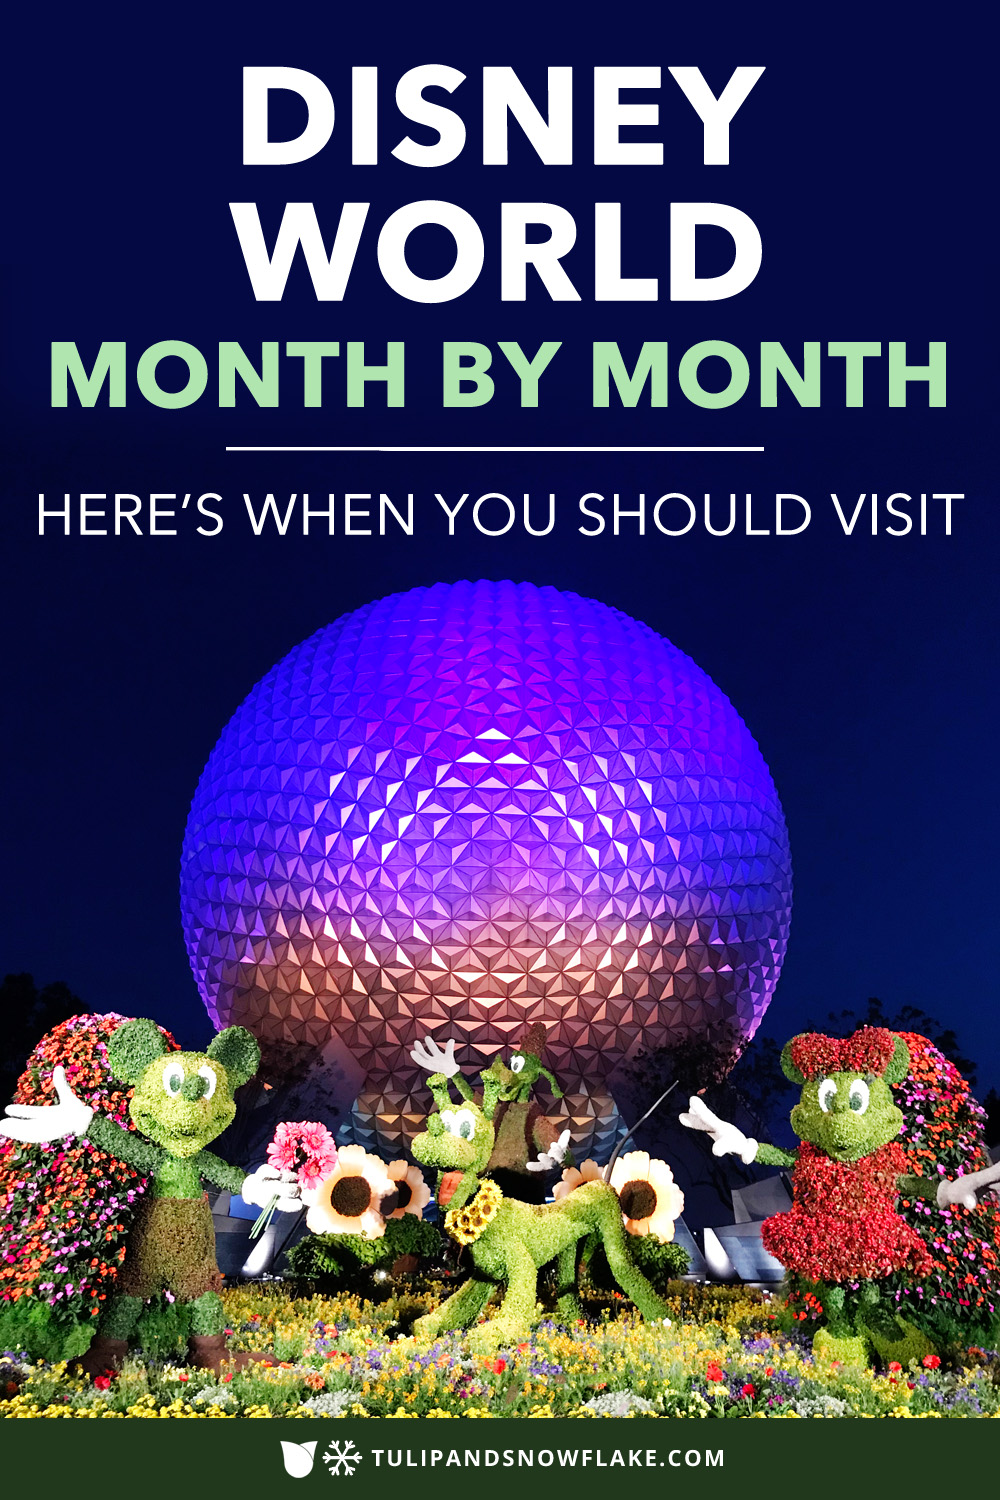 Disney World month by month